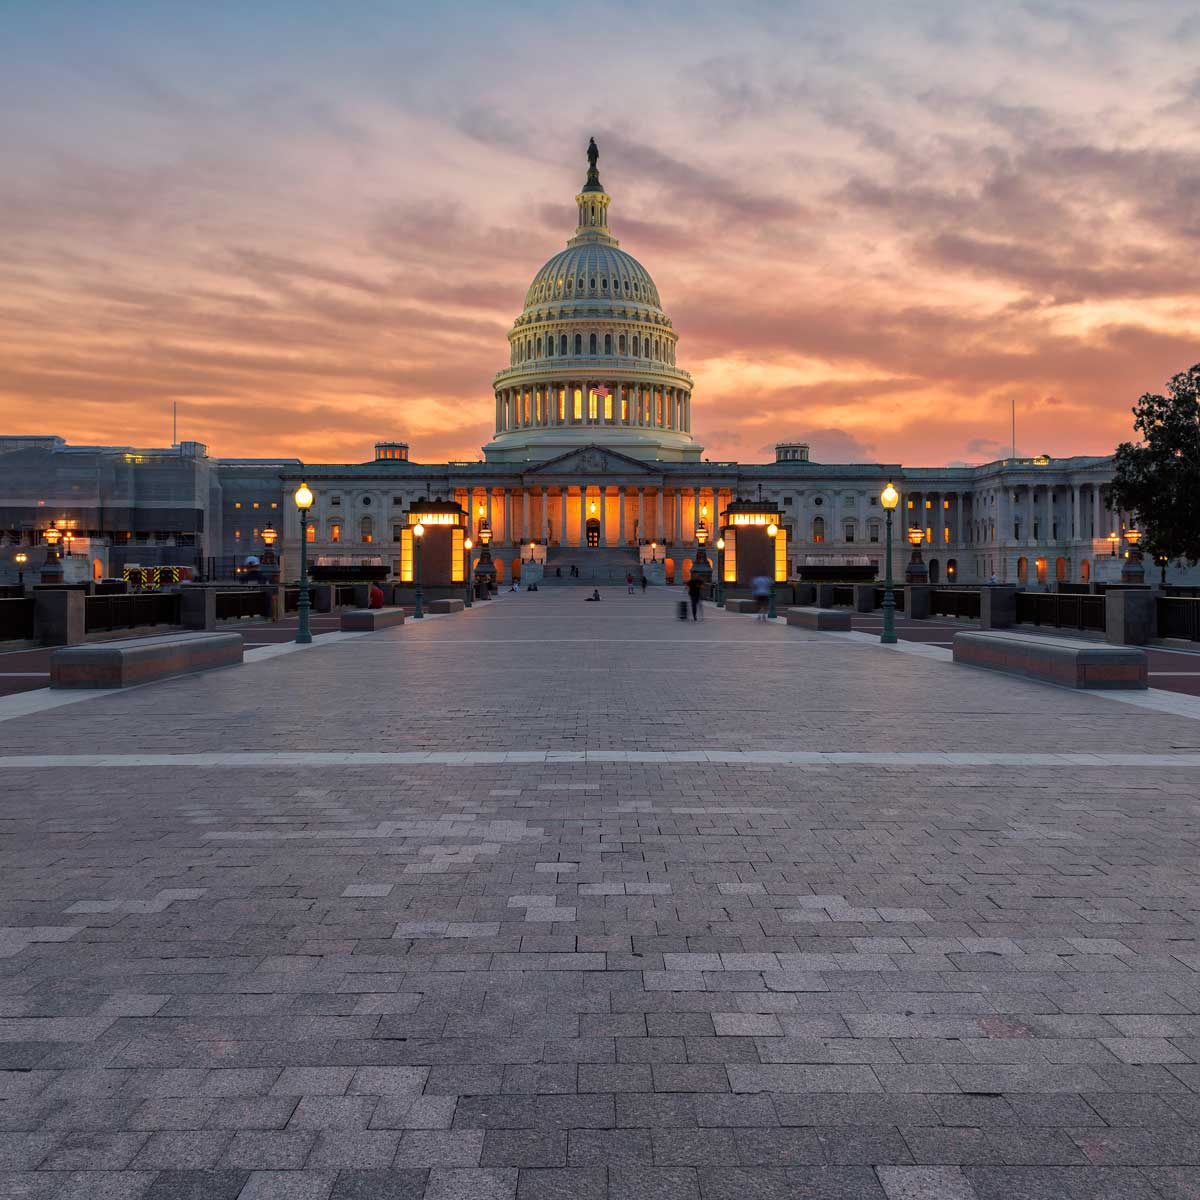 The United States Capitol Building in Washington DC at sunset